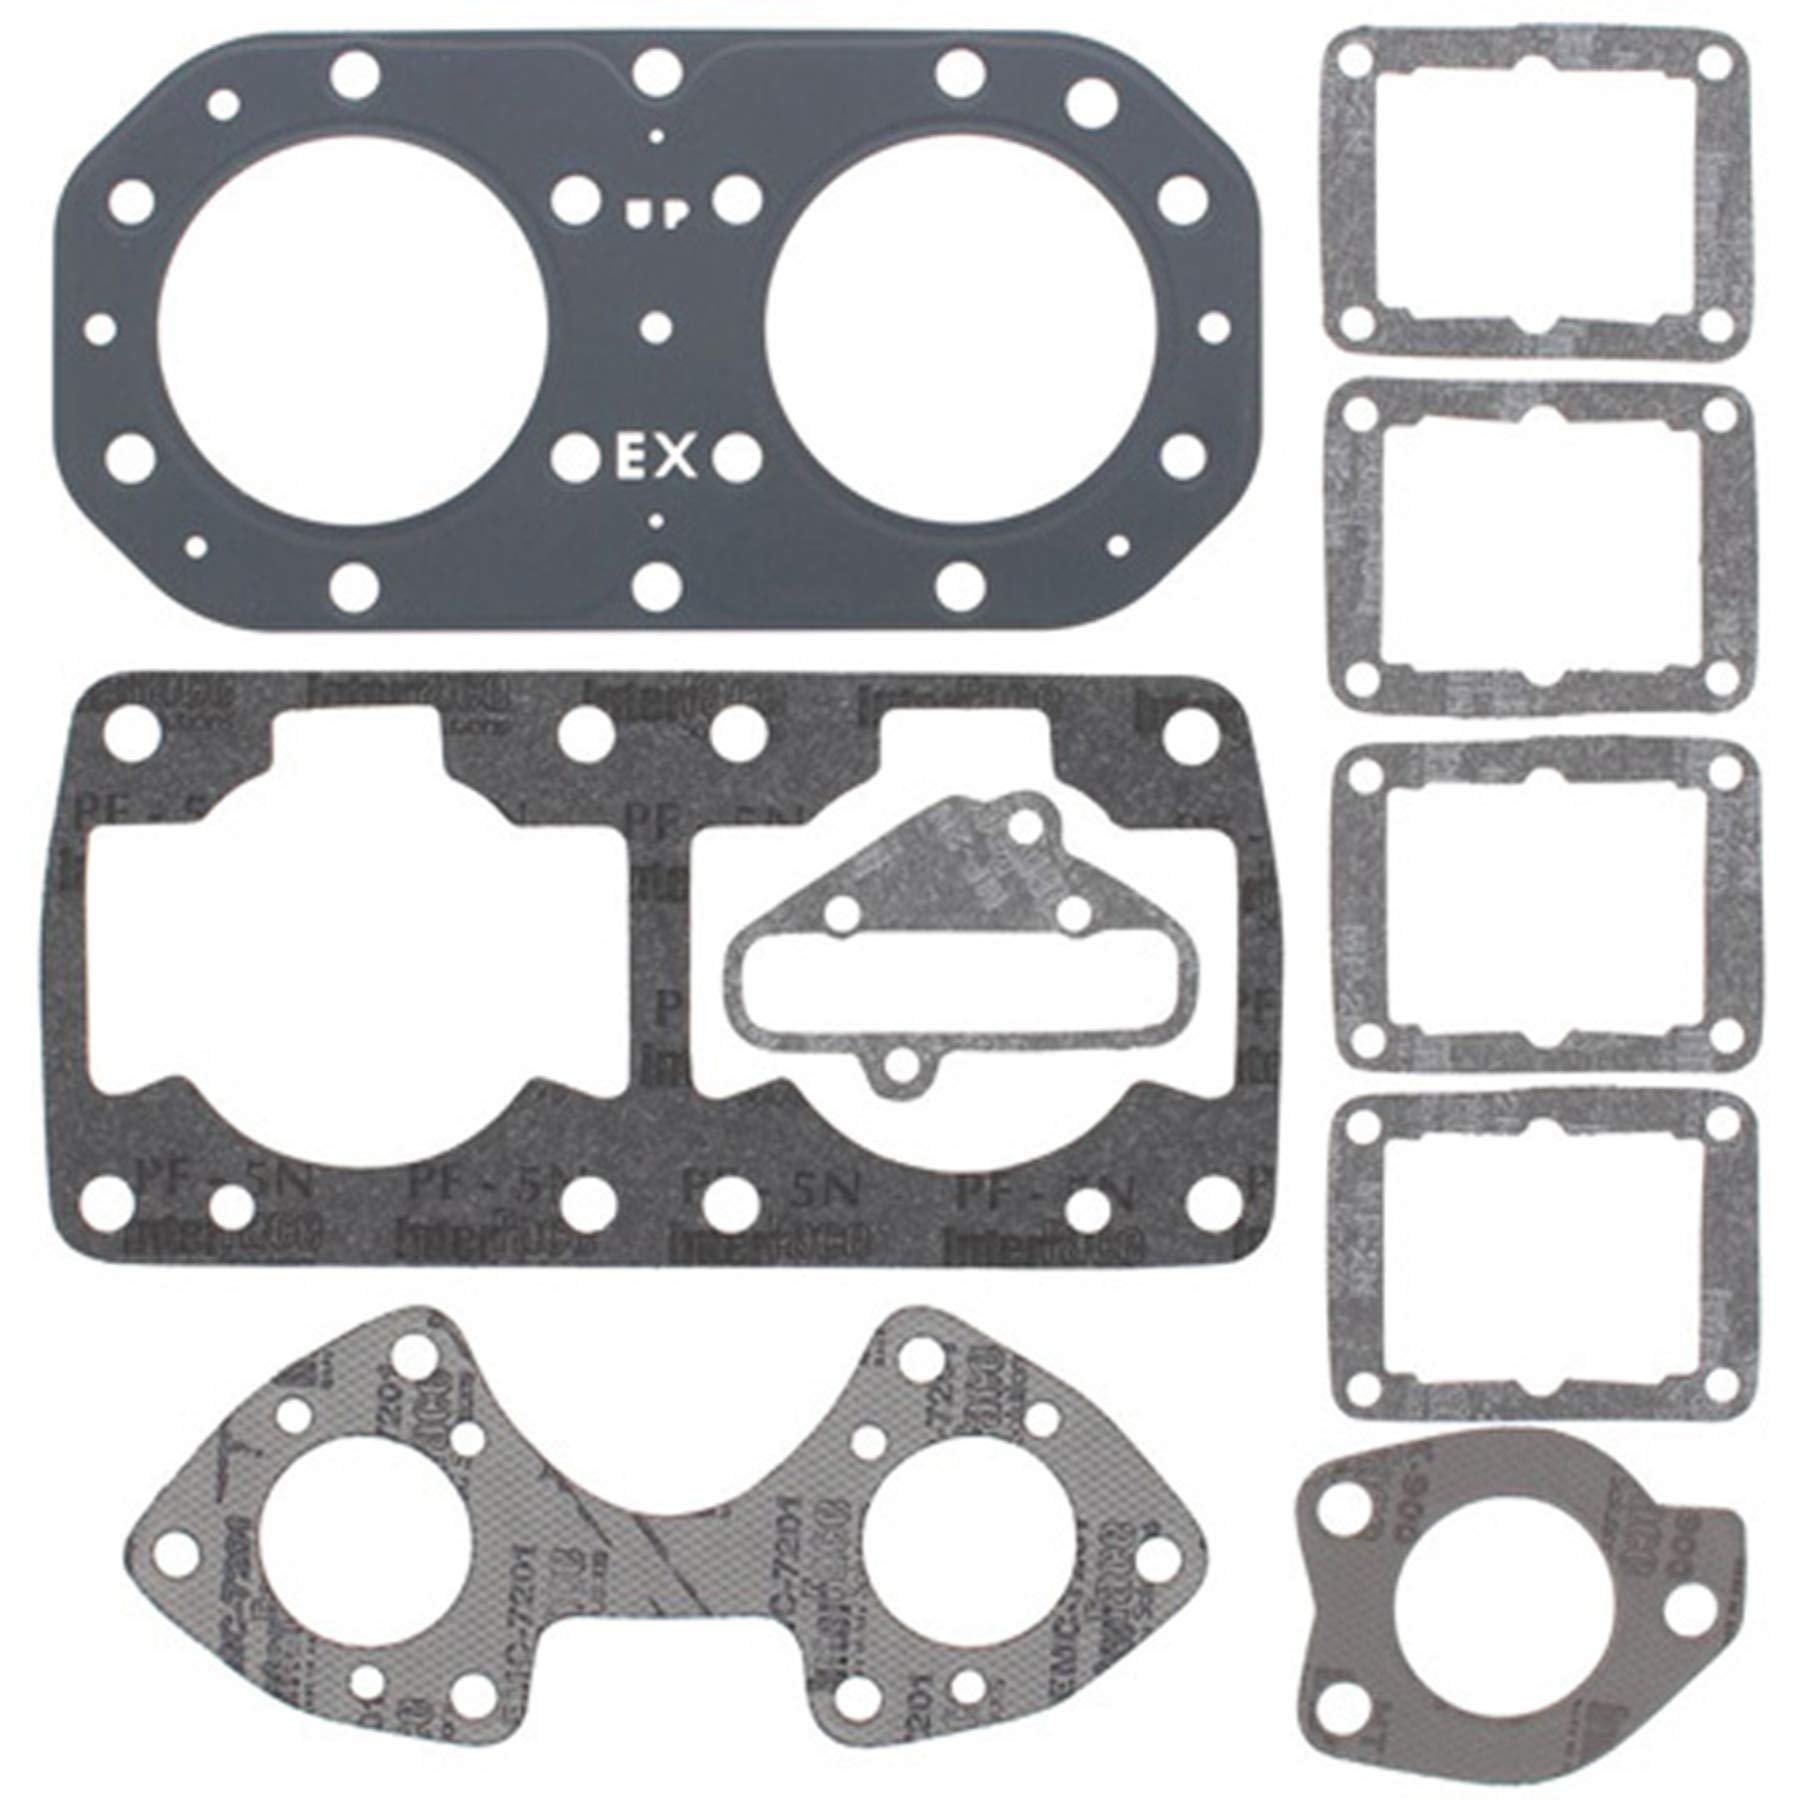 Top End Gasket Set For 1989 Kawasaki JS650 650SX Personal Watercraft by RD - Winderosa